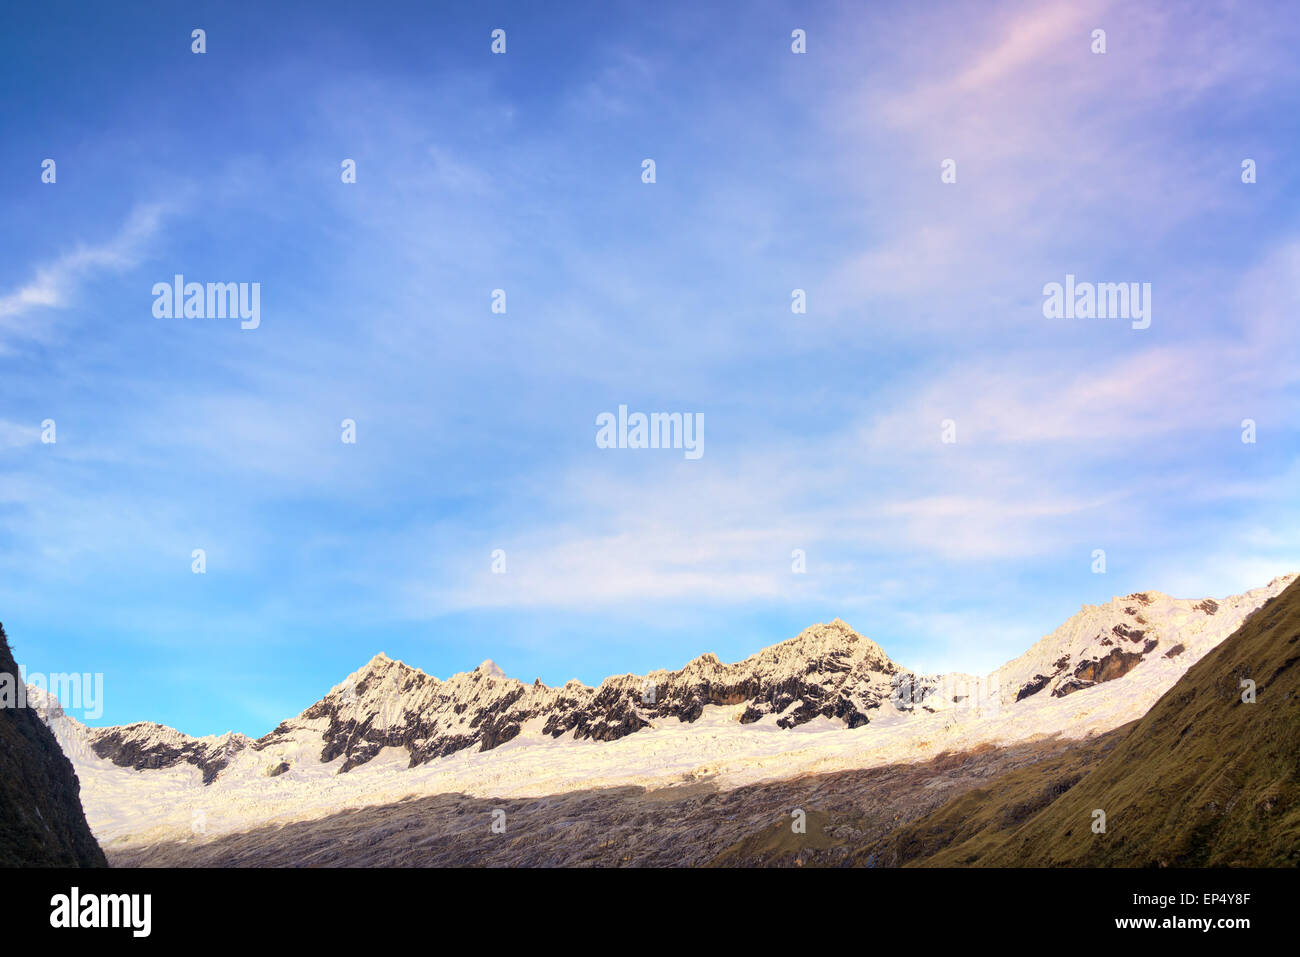 View of Andes mountains in the Cordillera Blanca near Huaraz, Peru - Stock Image